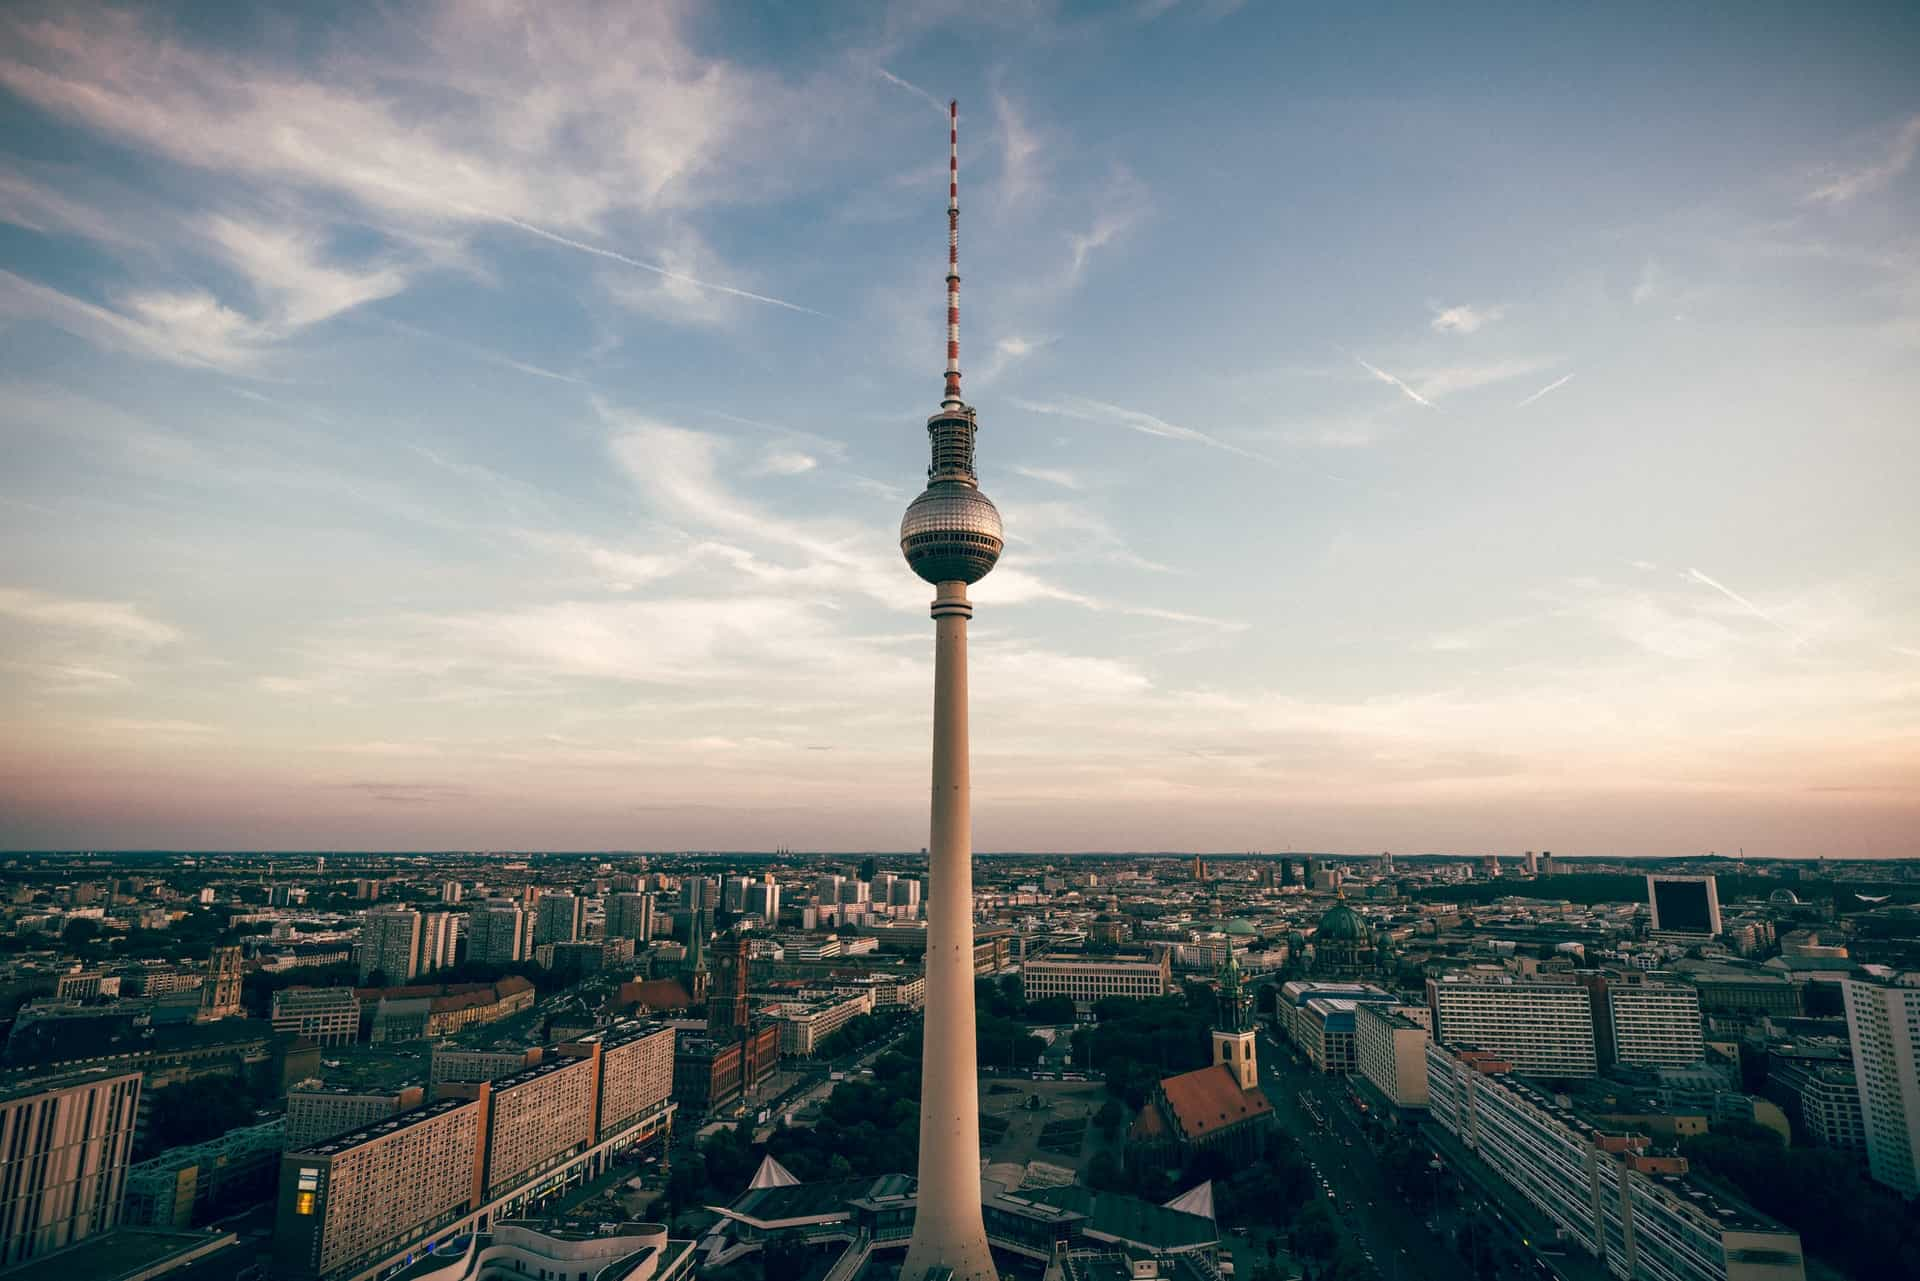 Berlin Hostels Guide: Find the Perfect Budget Lodging Solution!